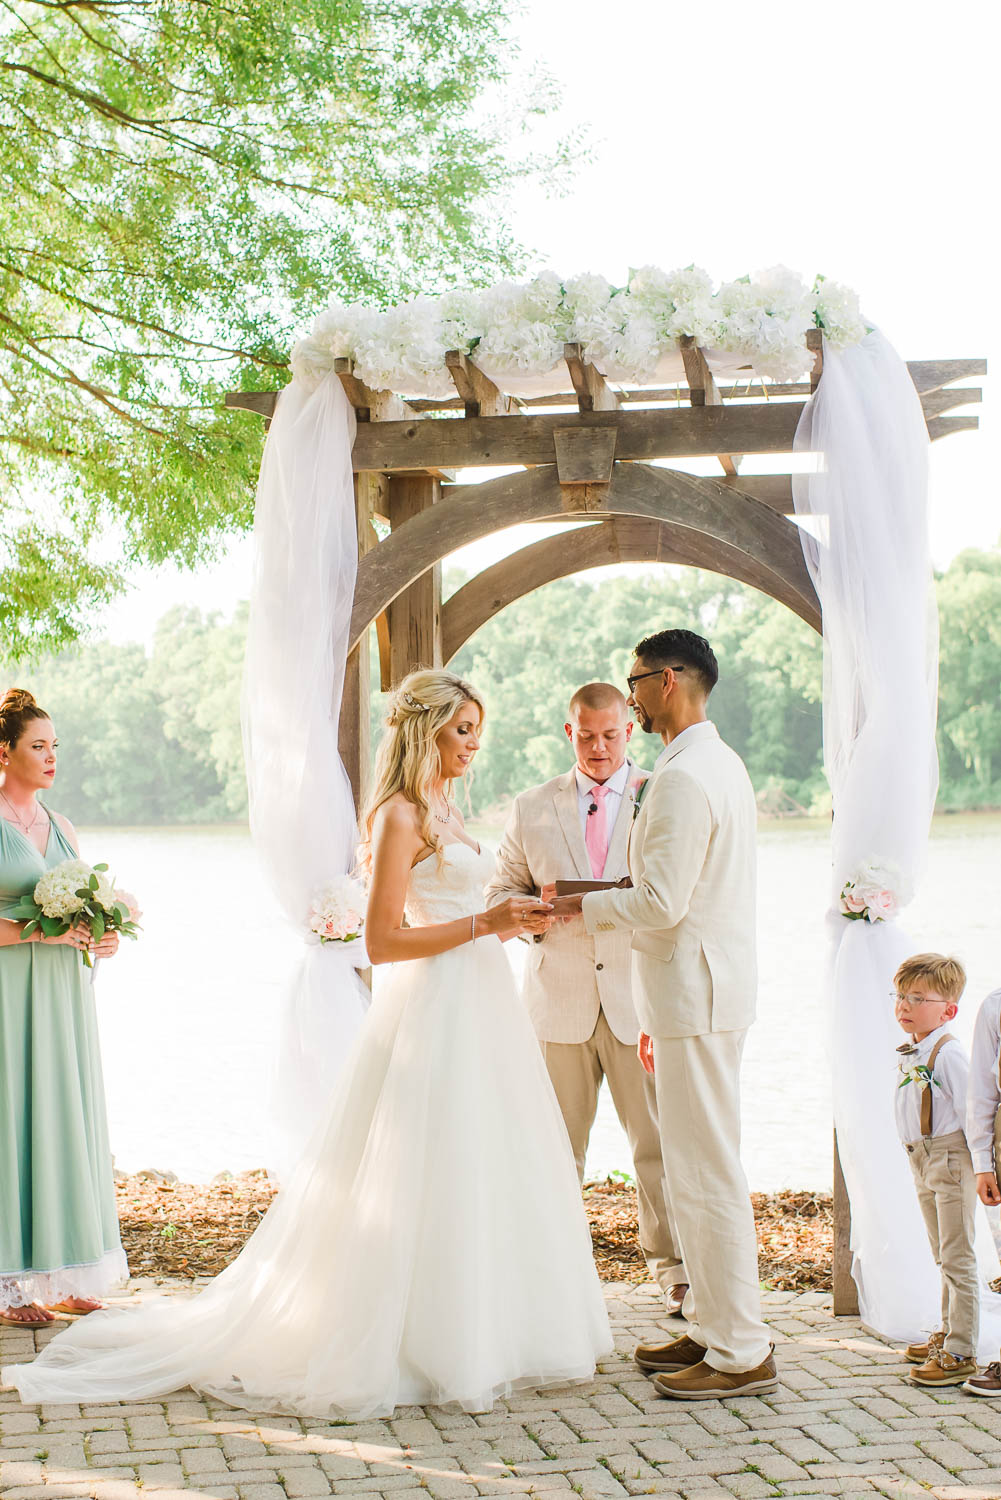 Intimate Tennessee River wedding ceremony